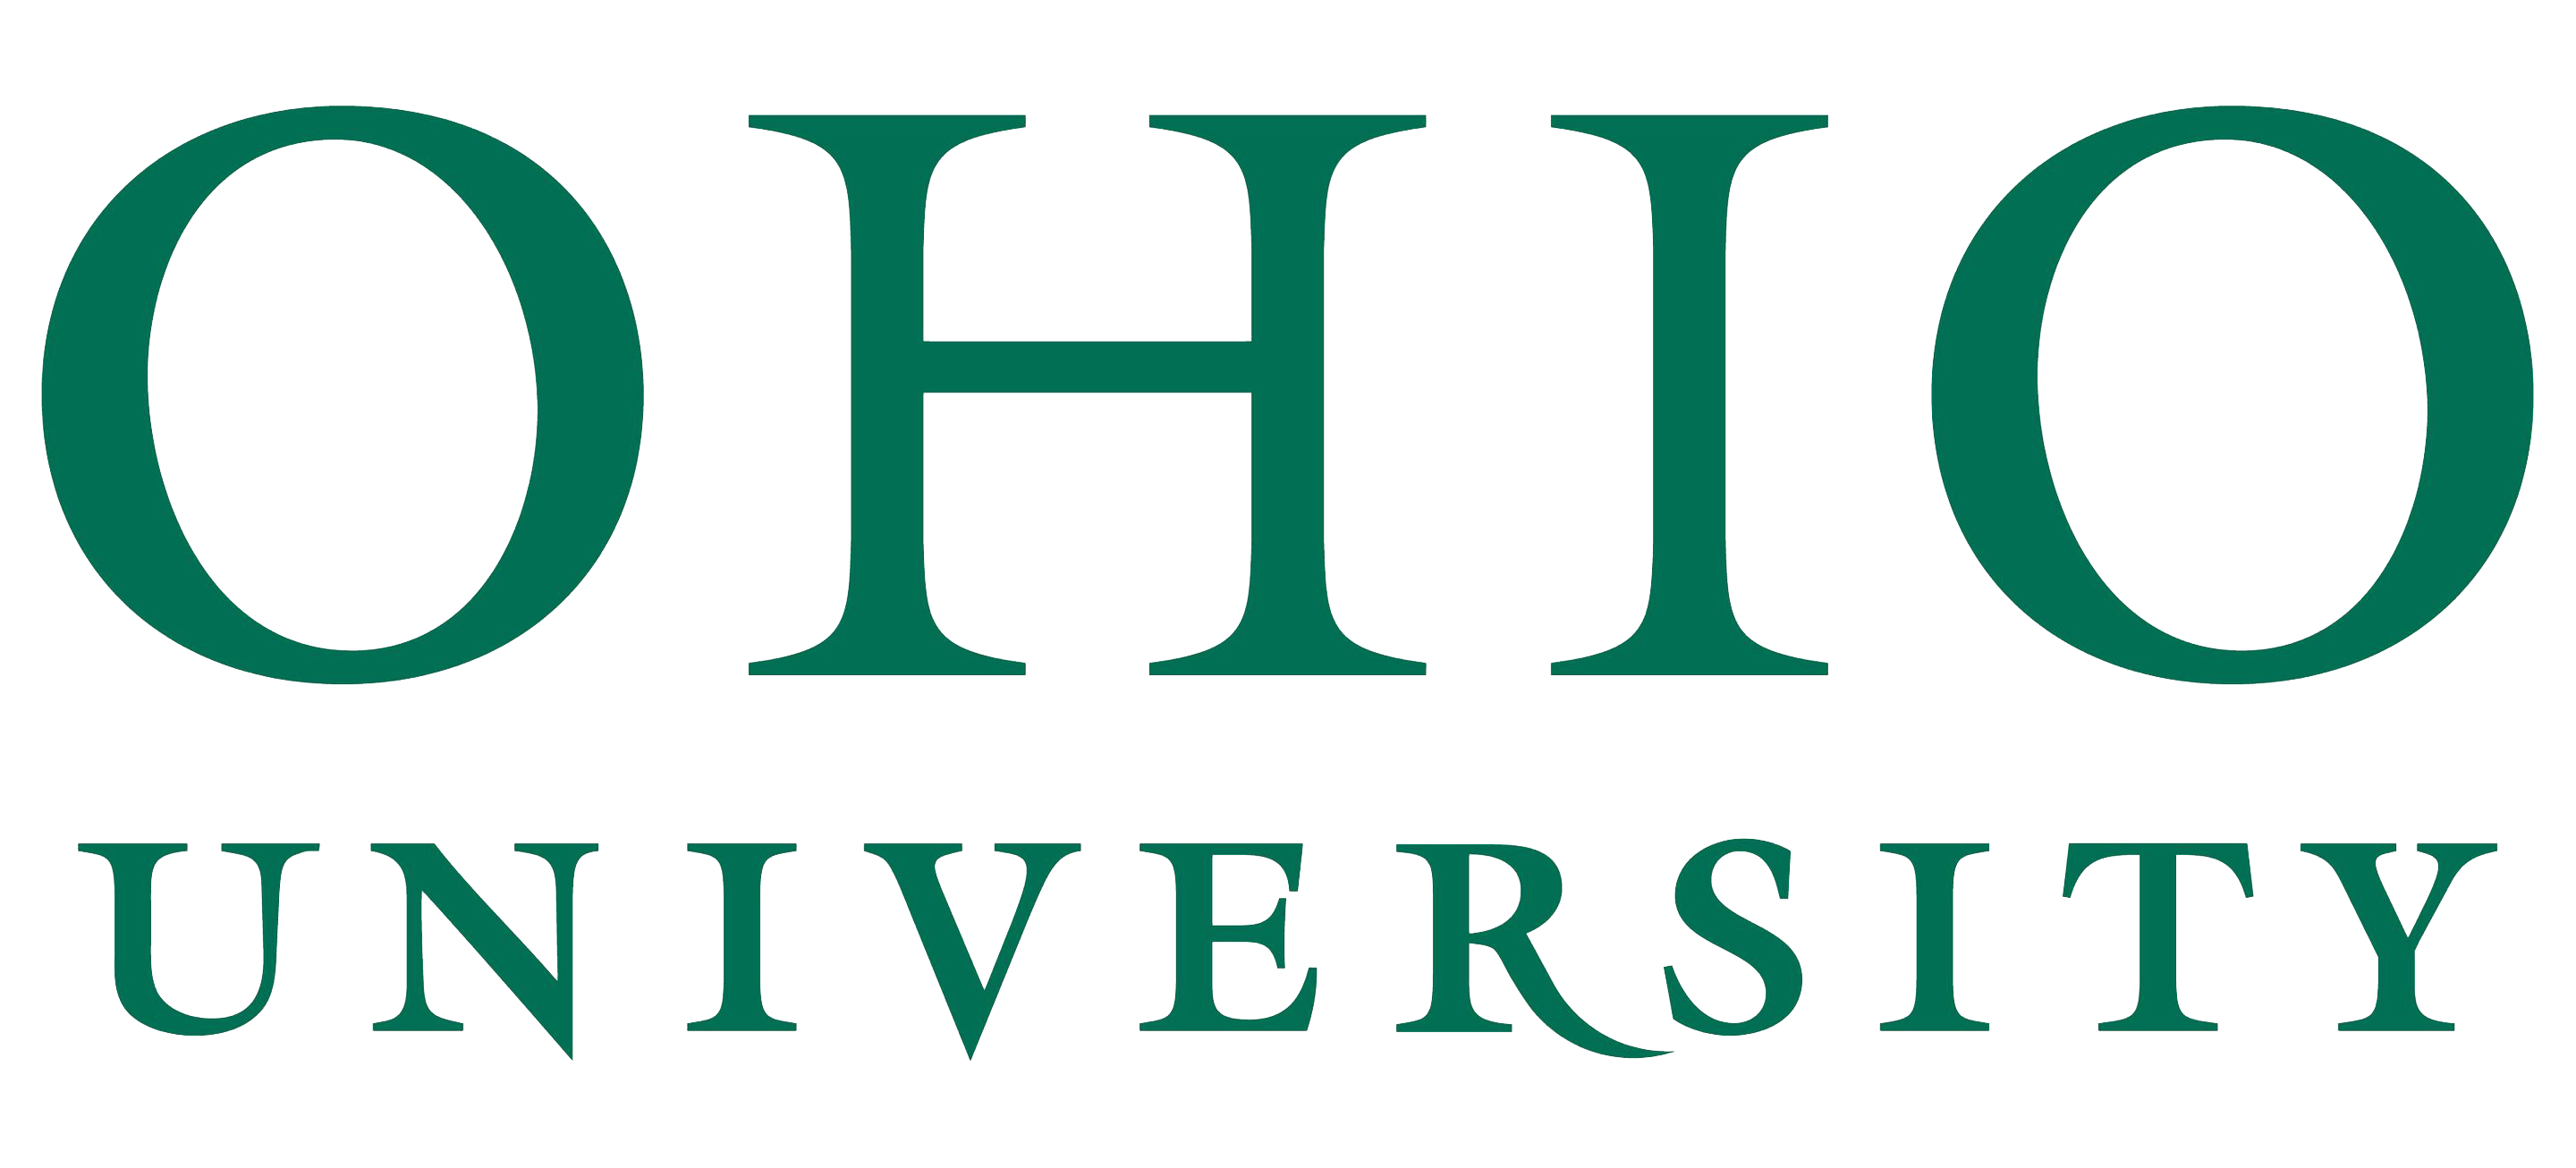 multimedia journalism Ohio University logo